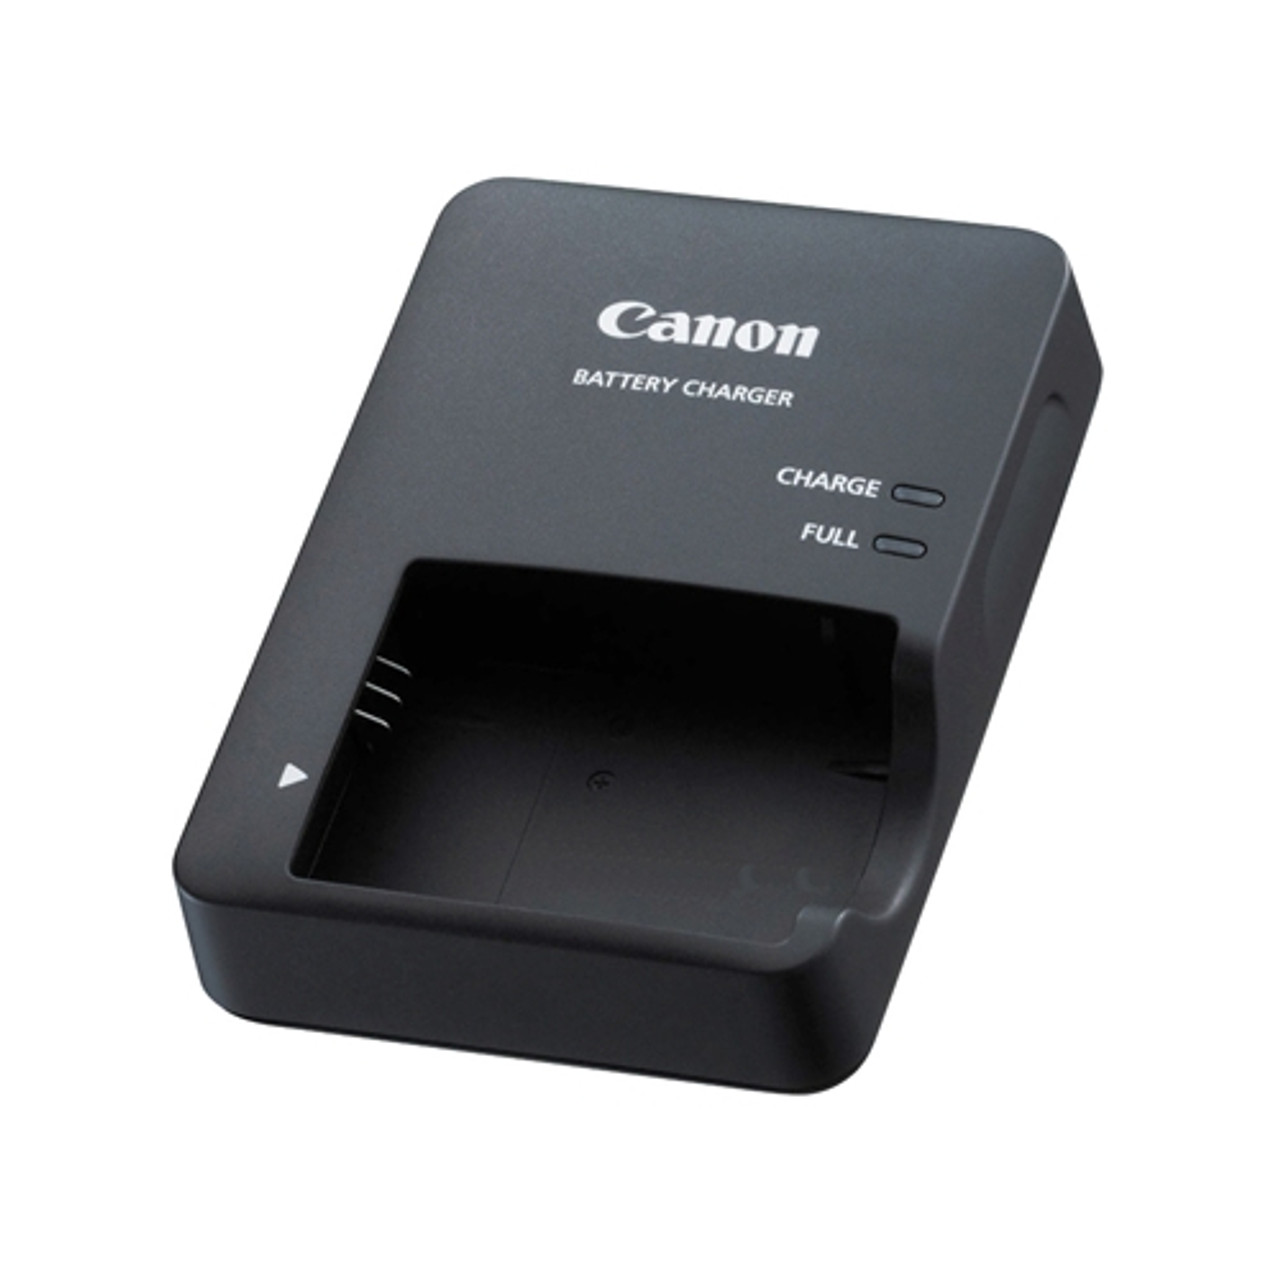 CANON CB-2LG BATTERY CHARGER